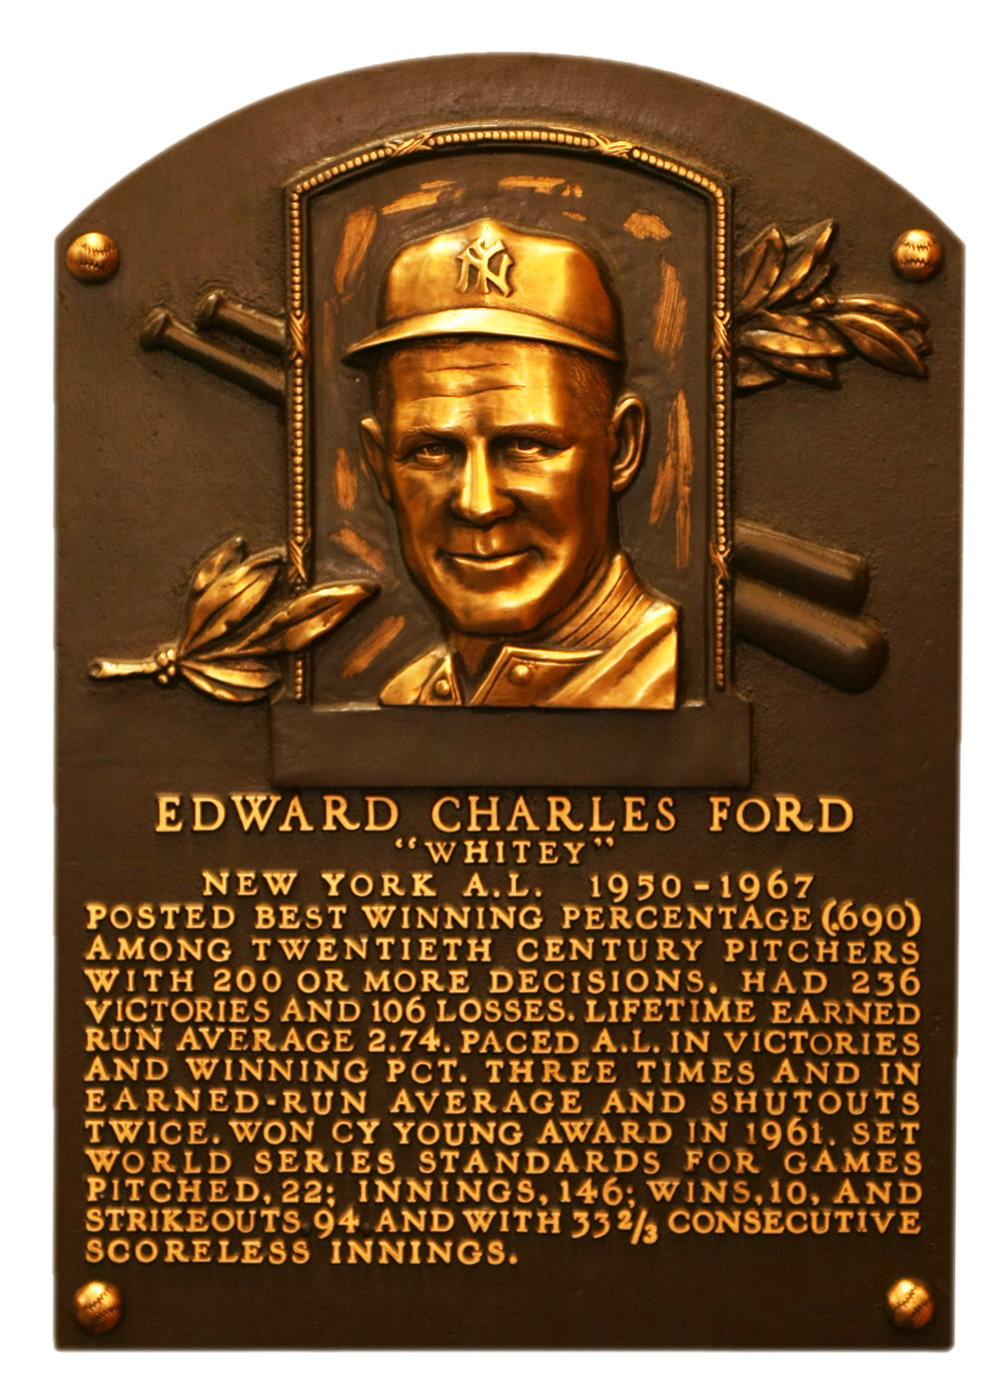 Ford Whitey Baseball Hall Of Fame